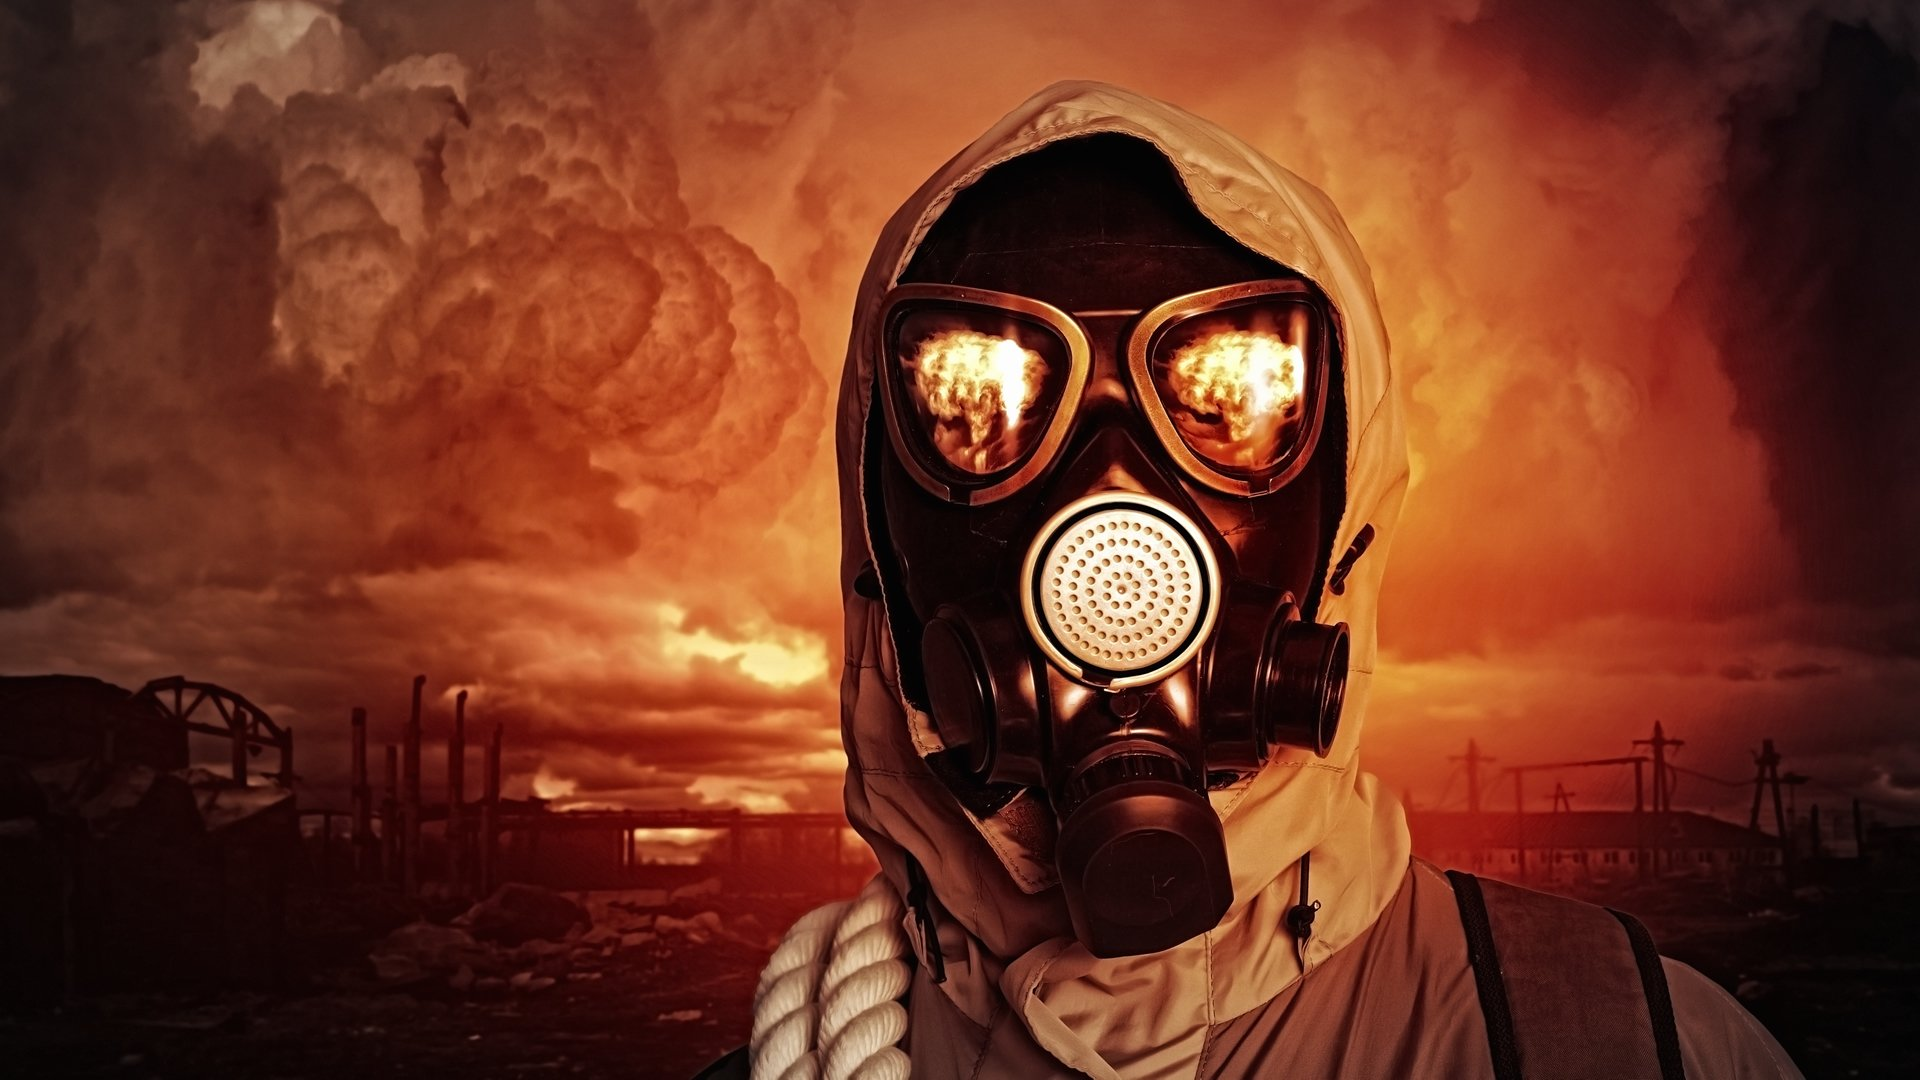 2-4-CH Man in gass mask world on fire   BrothersOfTheBook com